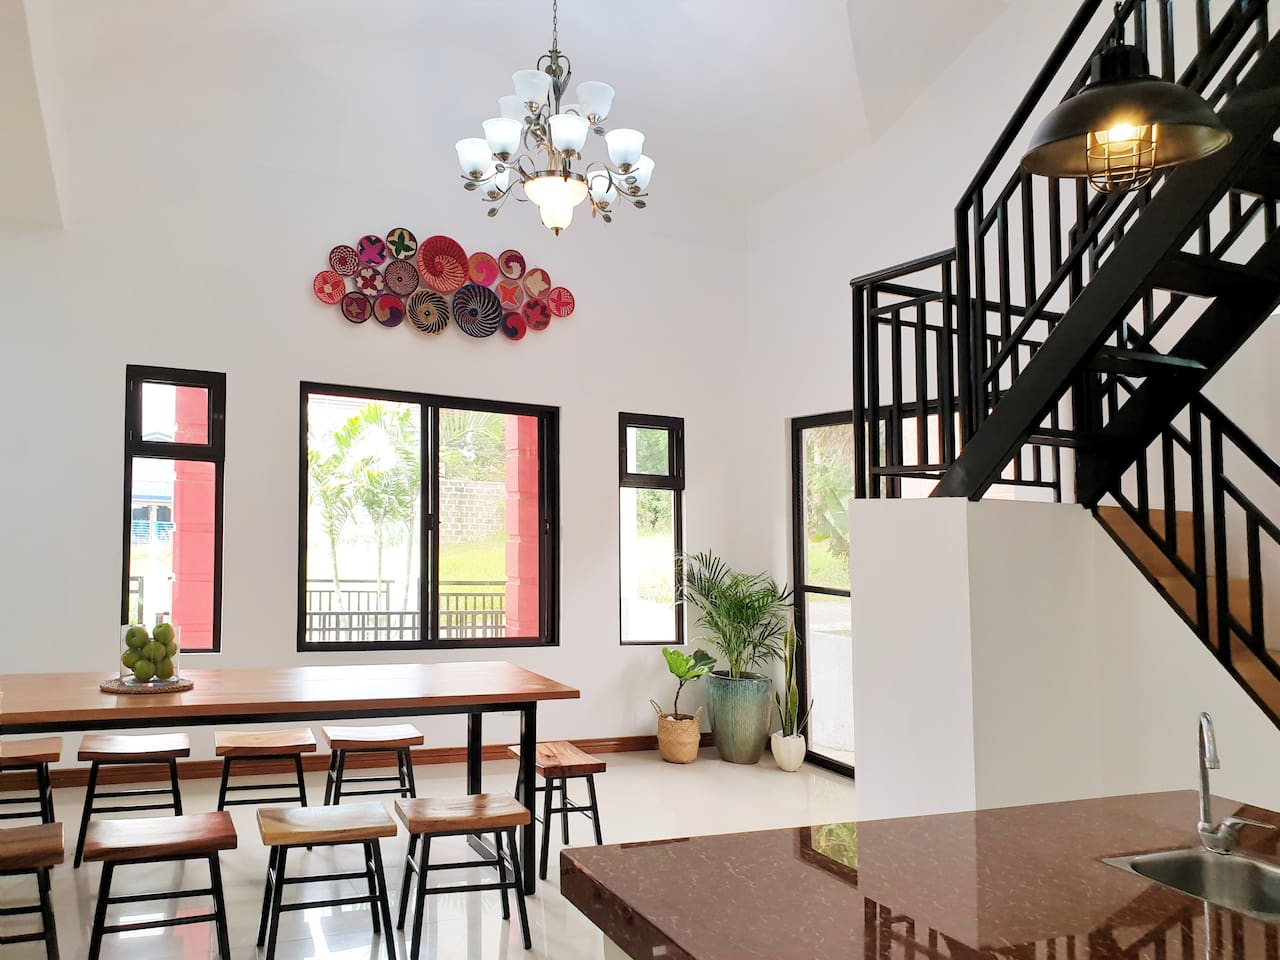 Industrial Boho themed house perfect for a quick getaway in Tagaytay city